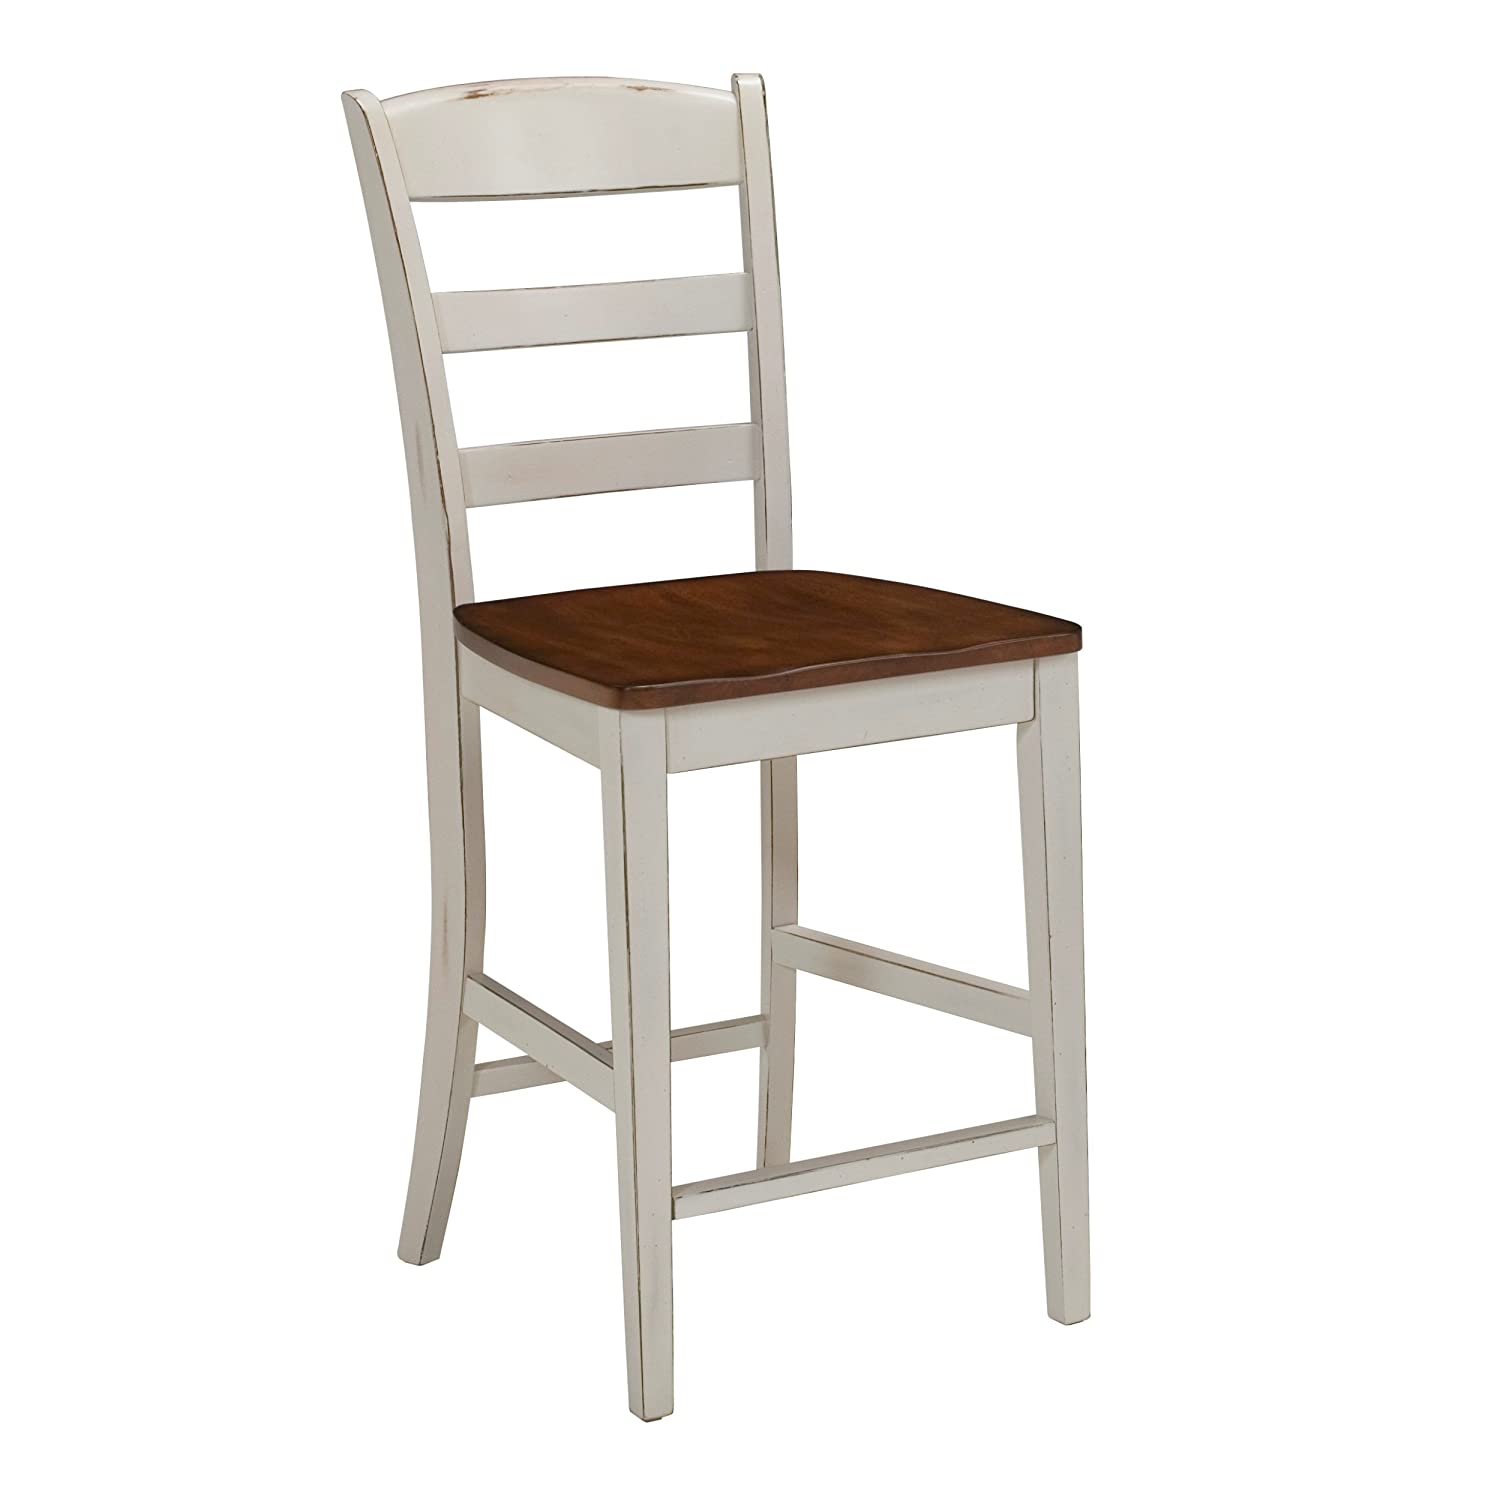 Amazon.com: Home Styles 5020-89 Monarch Stool, Antique White ...